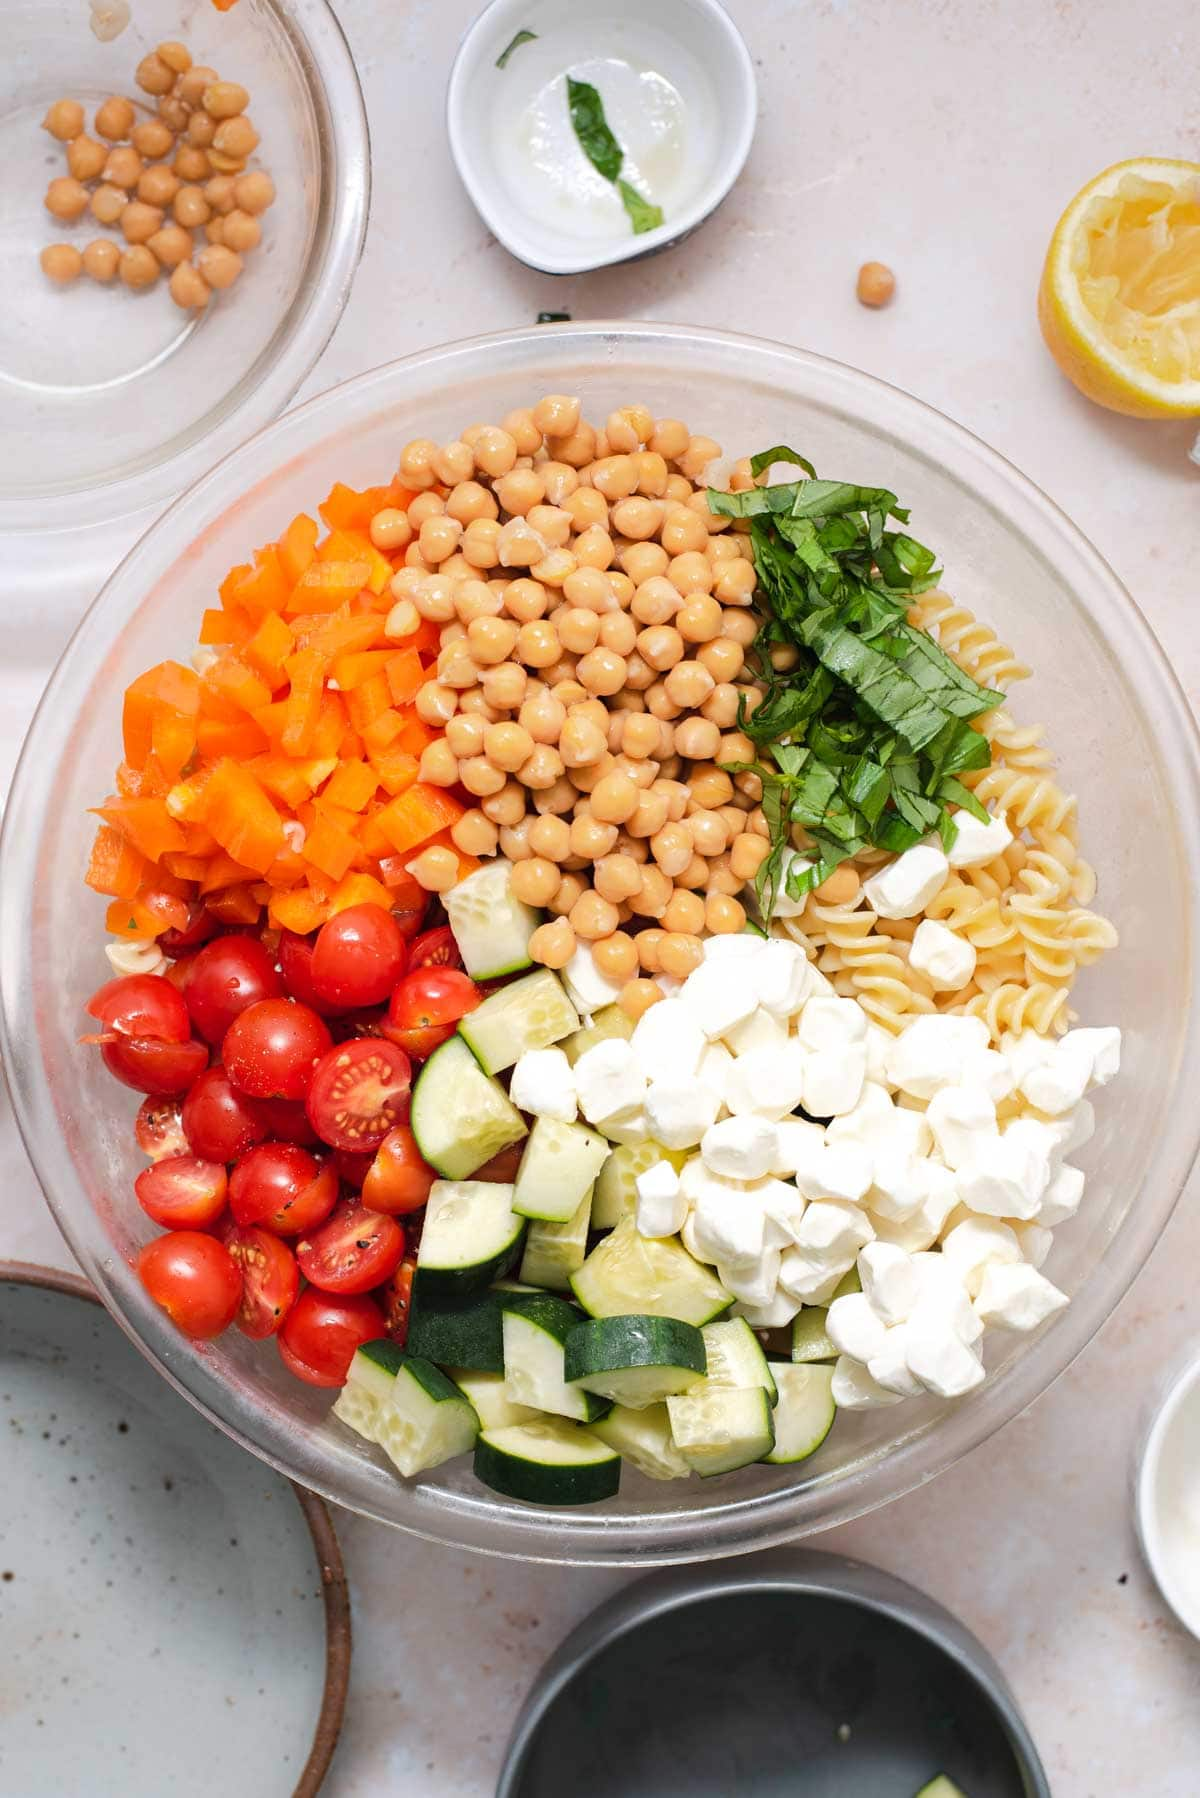 Pasta salad ingredients portioned out into large glass bowl